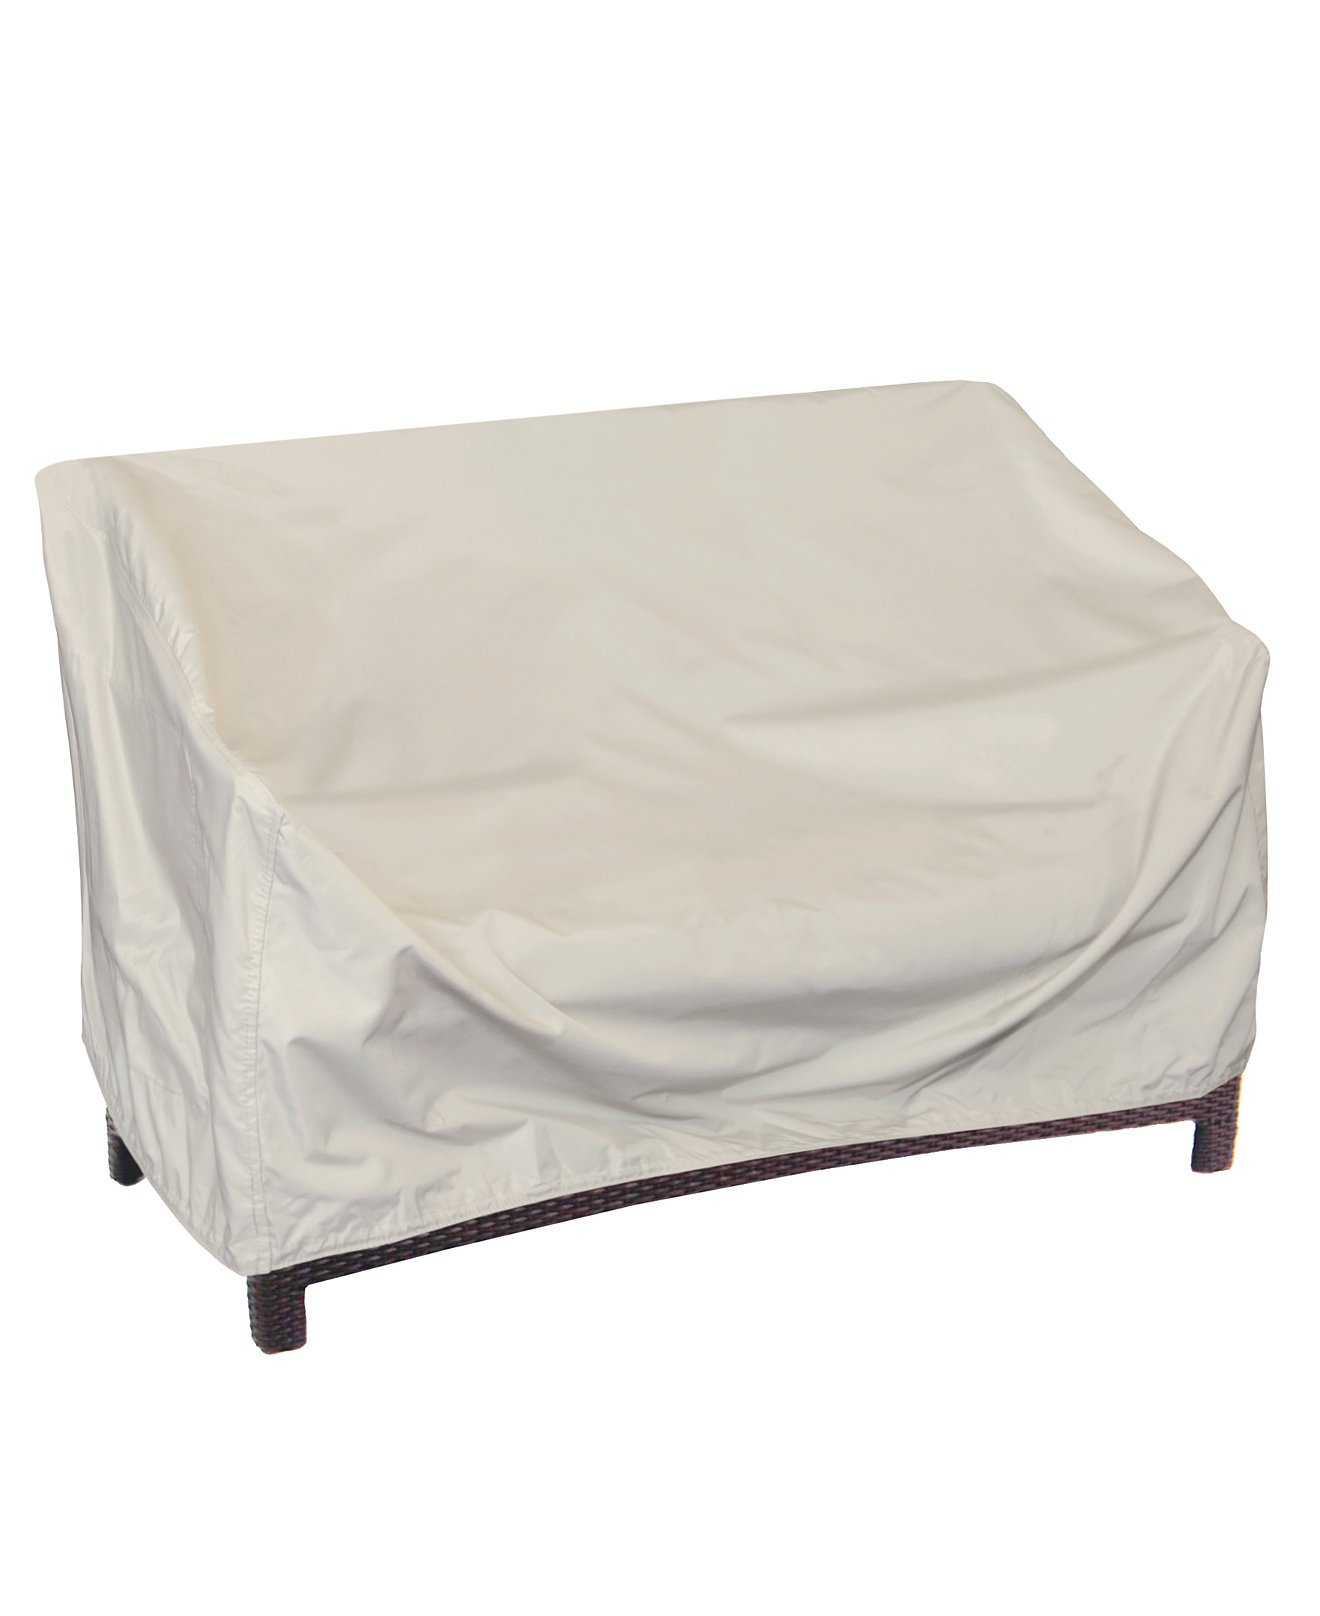 Patio Chair Cover Patio Furniture Covers Storage And Protection Home